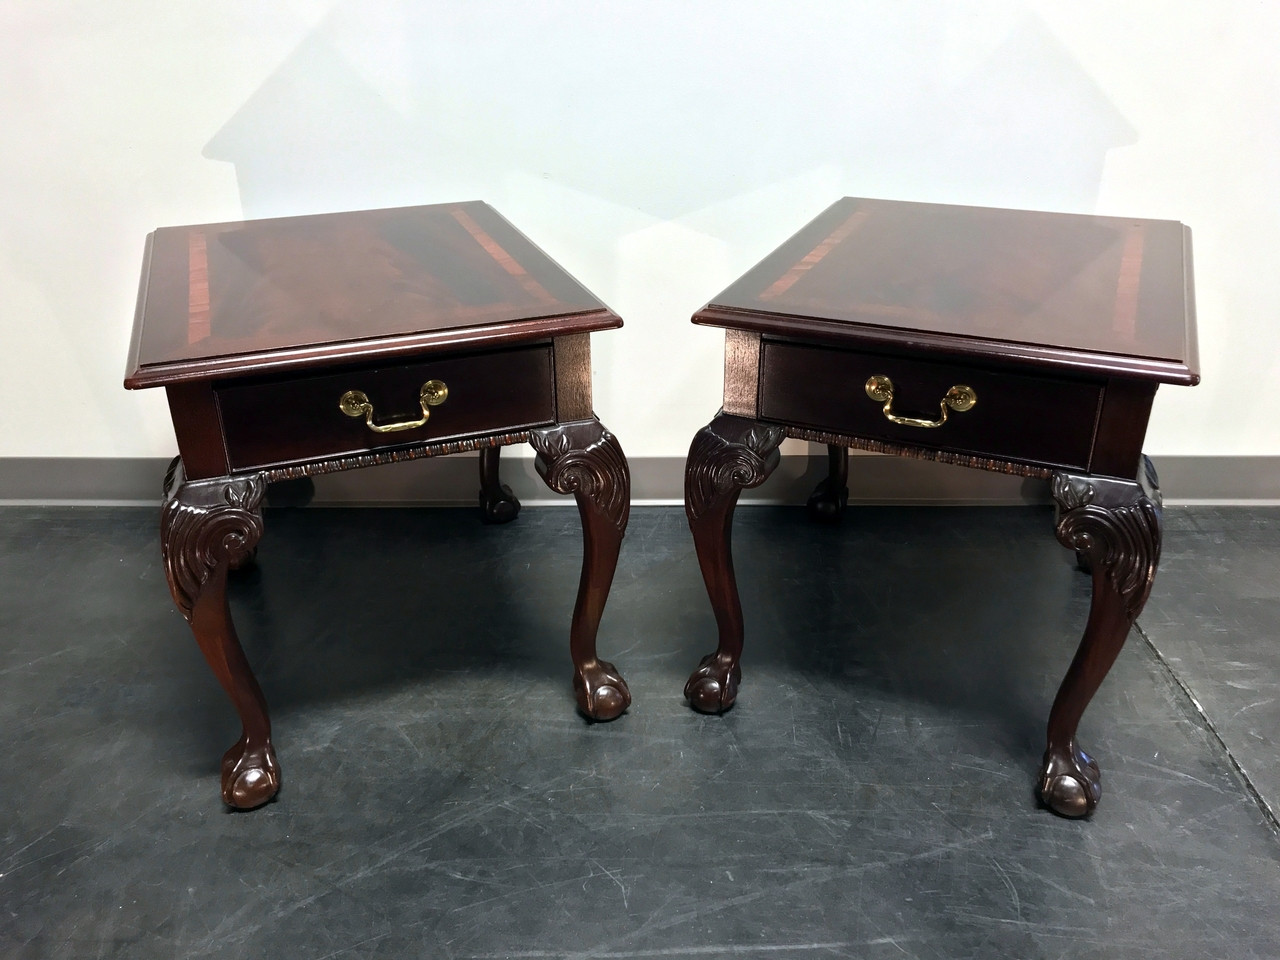 Sold Out Thomasville Mahogany Collection Chippendale End Side Tables Ball In Claw Feet Pair